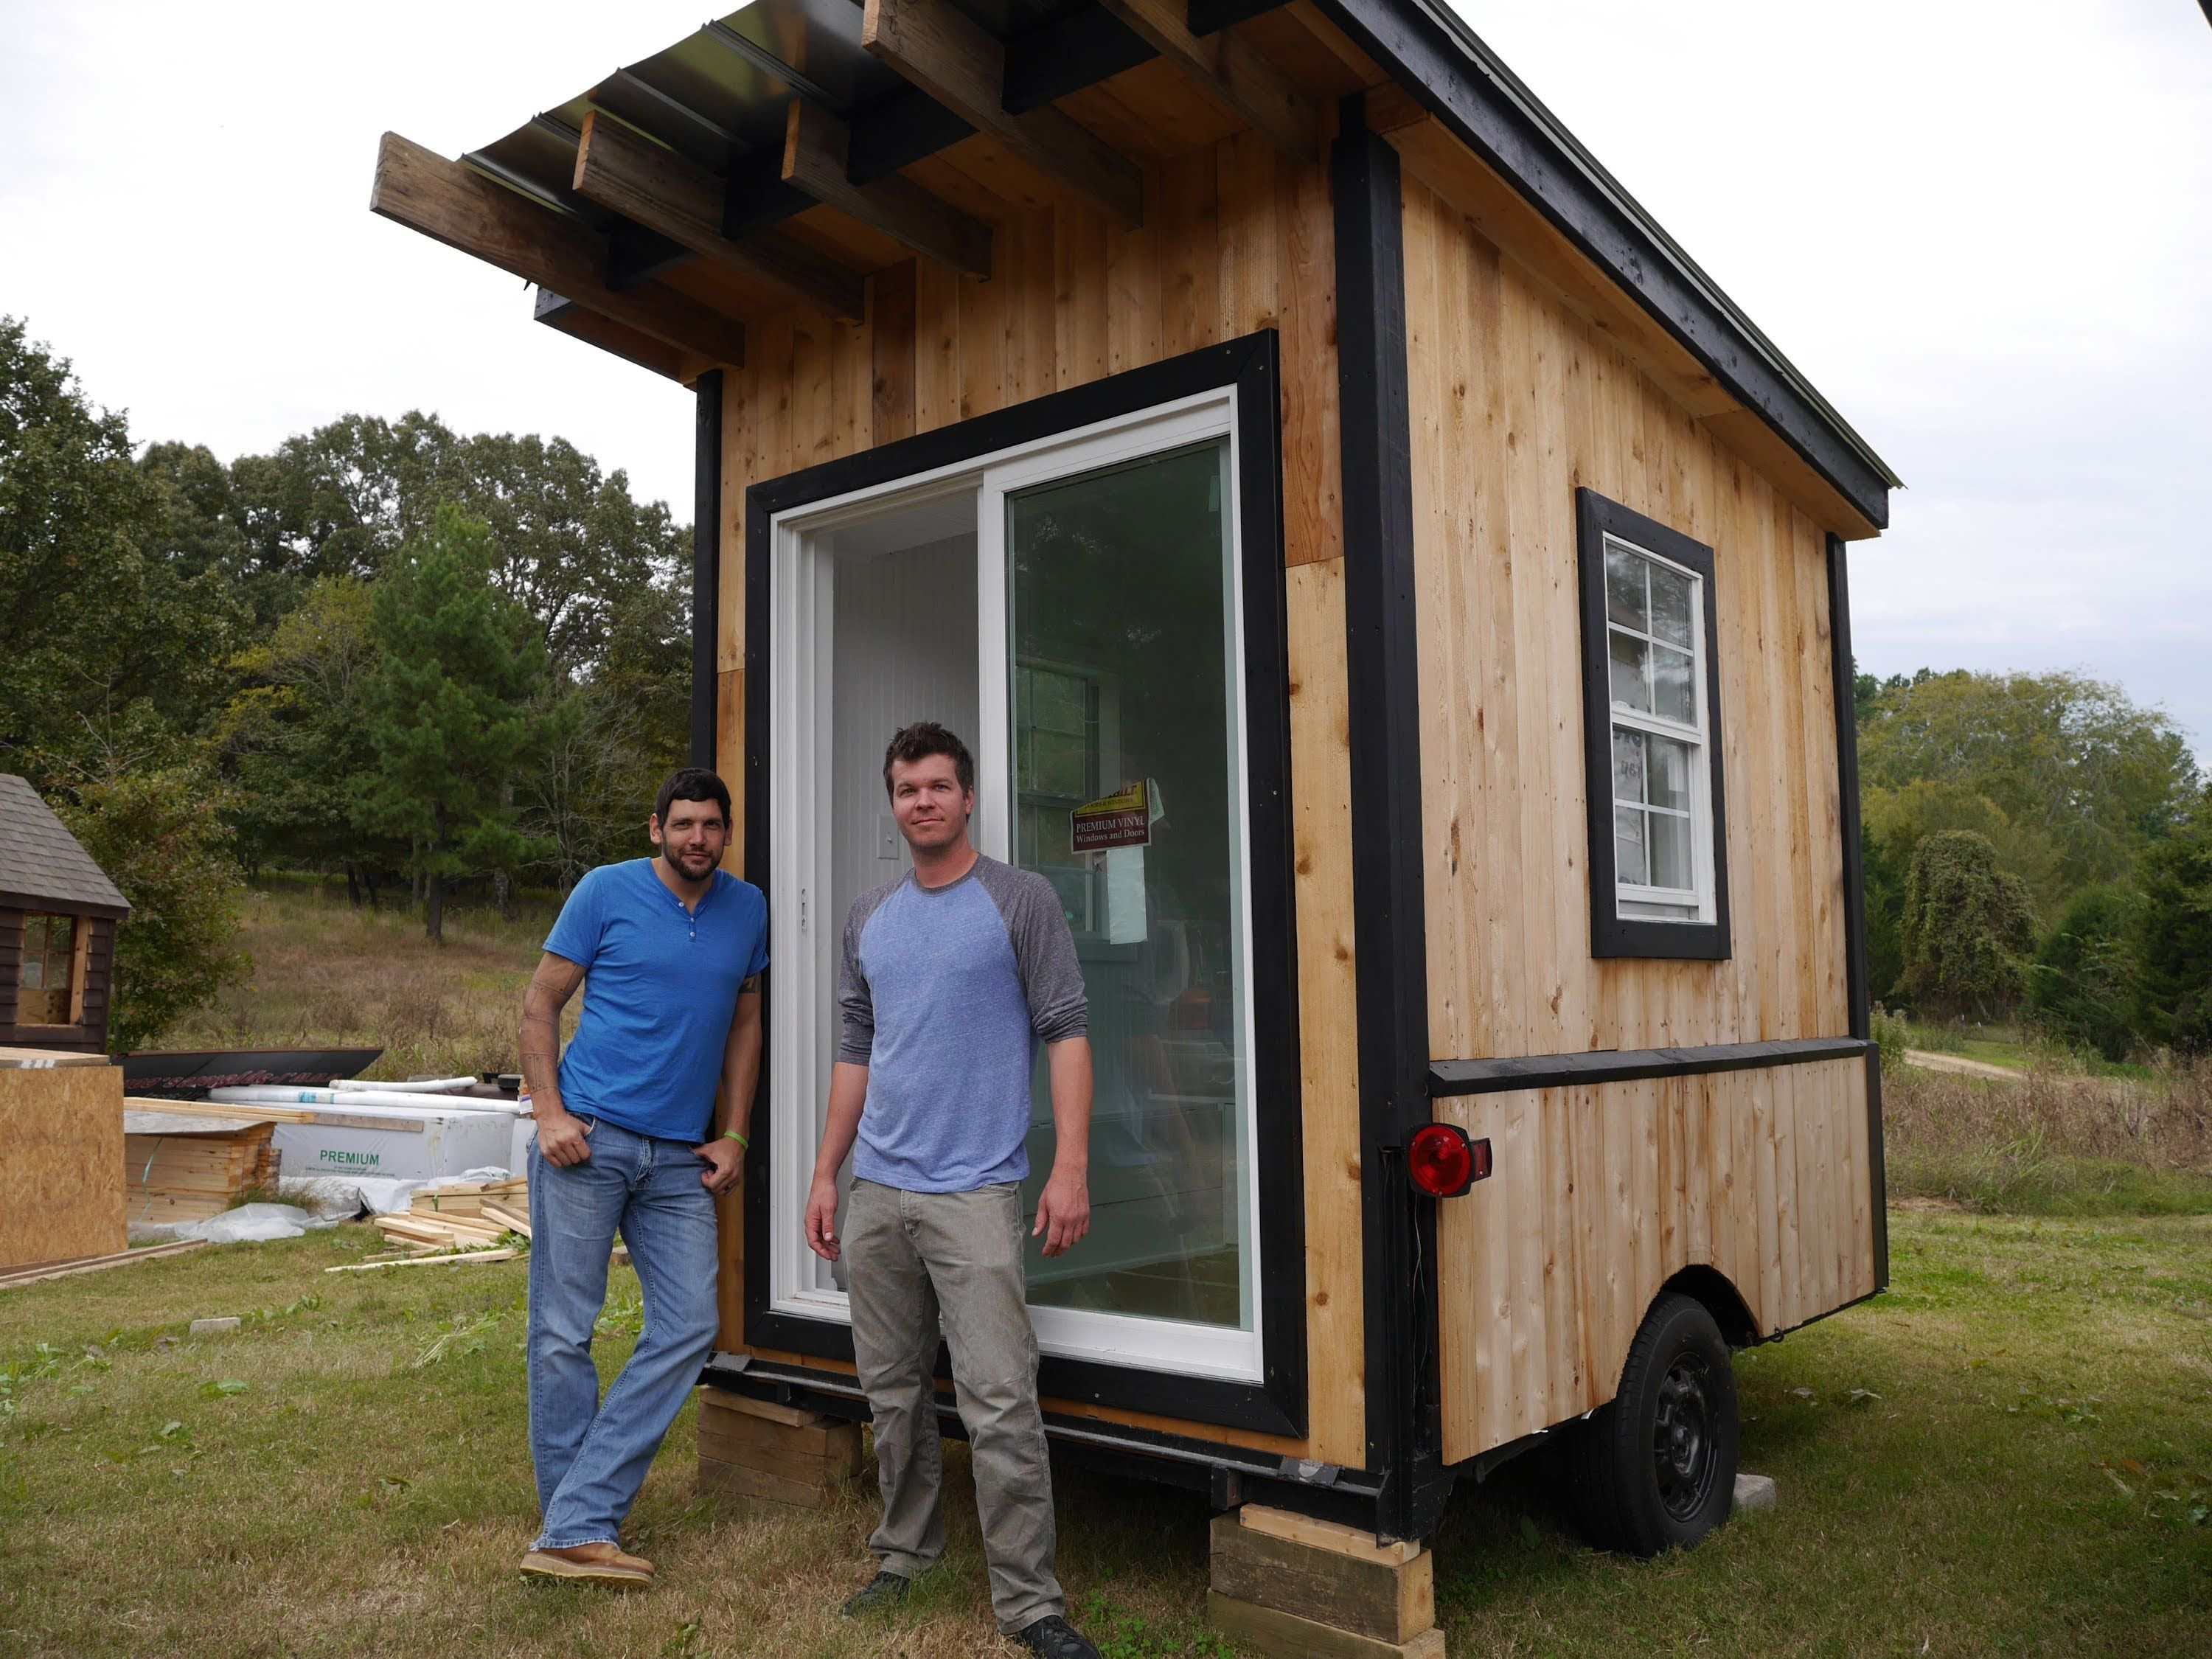 A Tiny Tailgating House Cabin On Wheels A 60 Square Foot